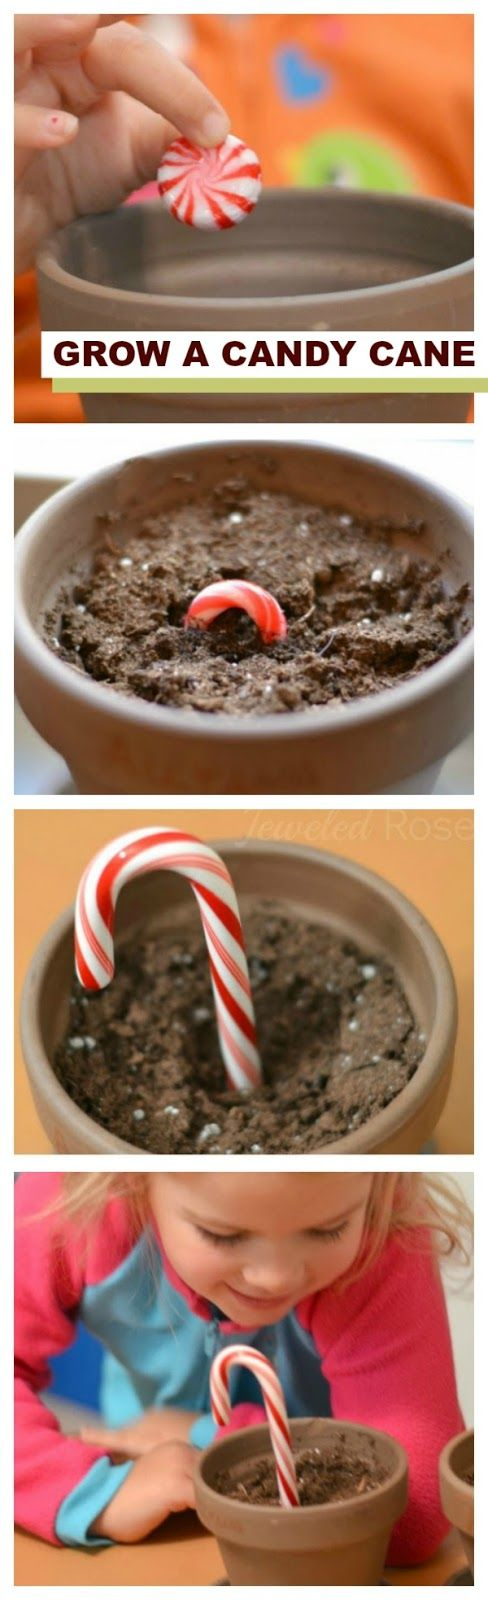 Grow a Candy Cane and WOW the kids!  My kids loved this simple bit of magic.